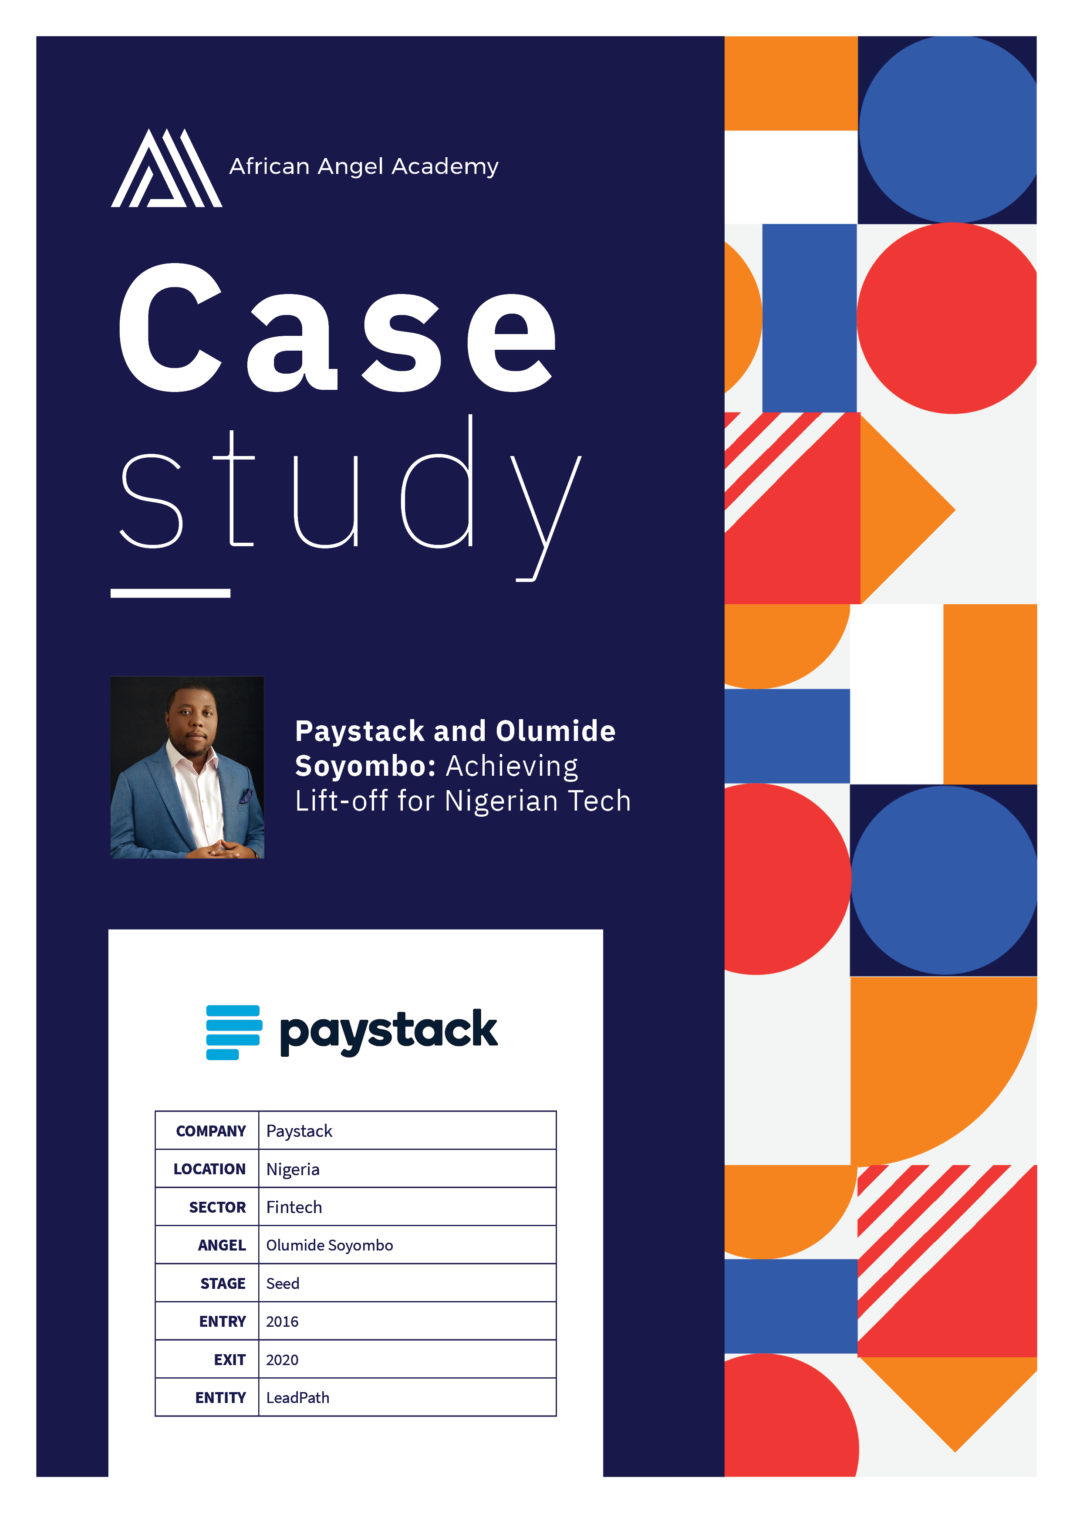 Paystack and Olumide Soyombo: Achieving Lift-off for Nigerian Tech